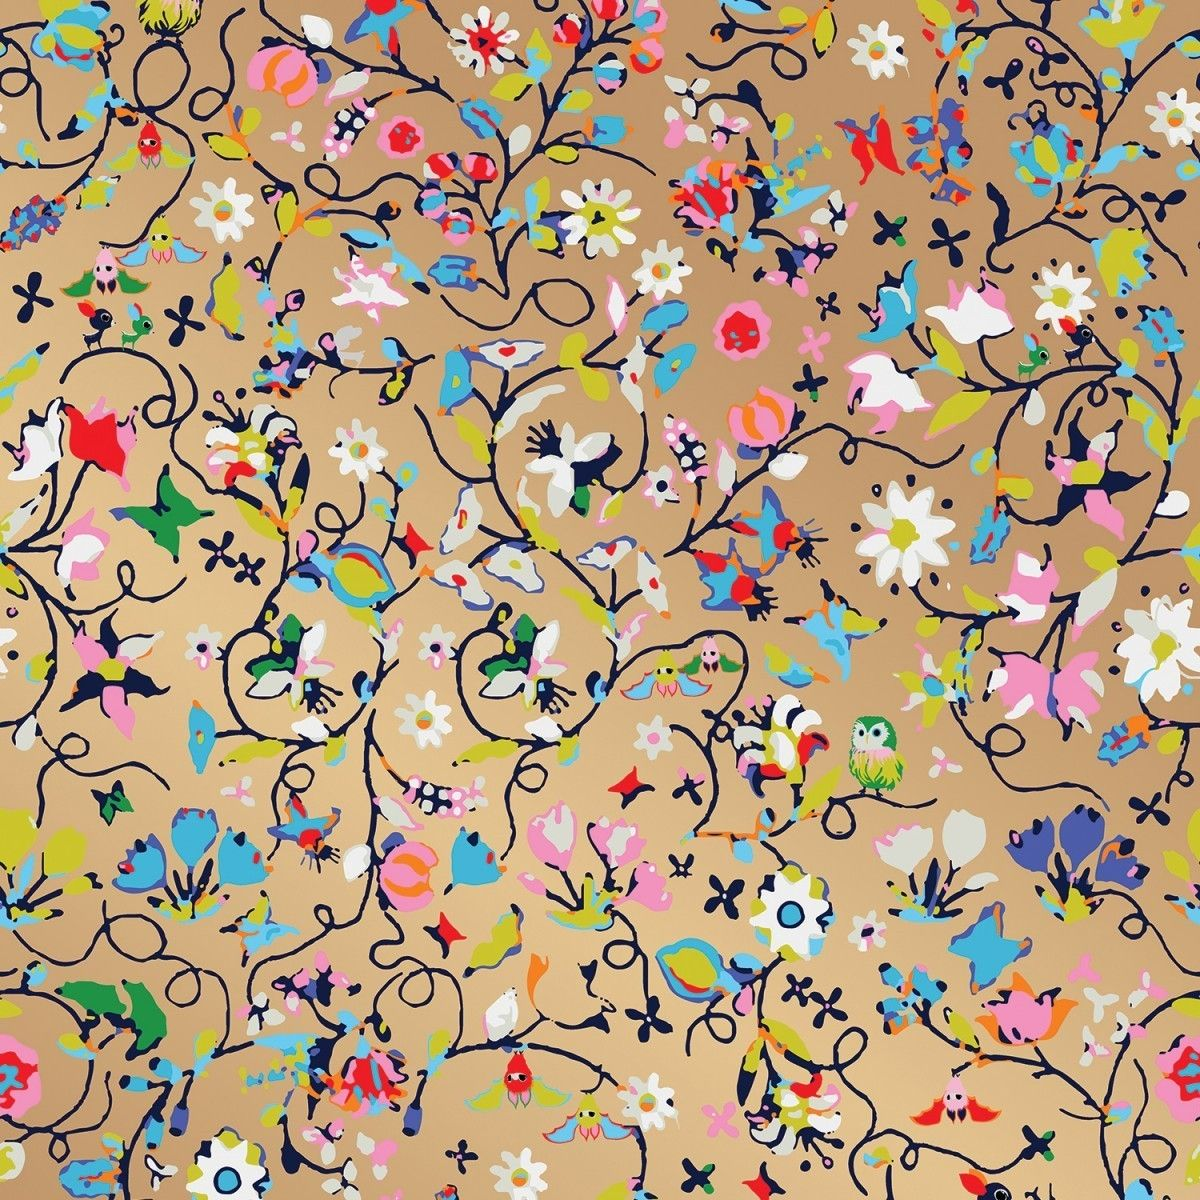 I Wish My Garden Looked Like This wallpaper from Tempaper